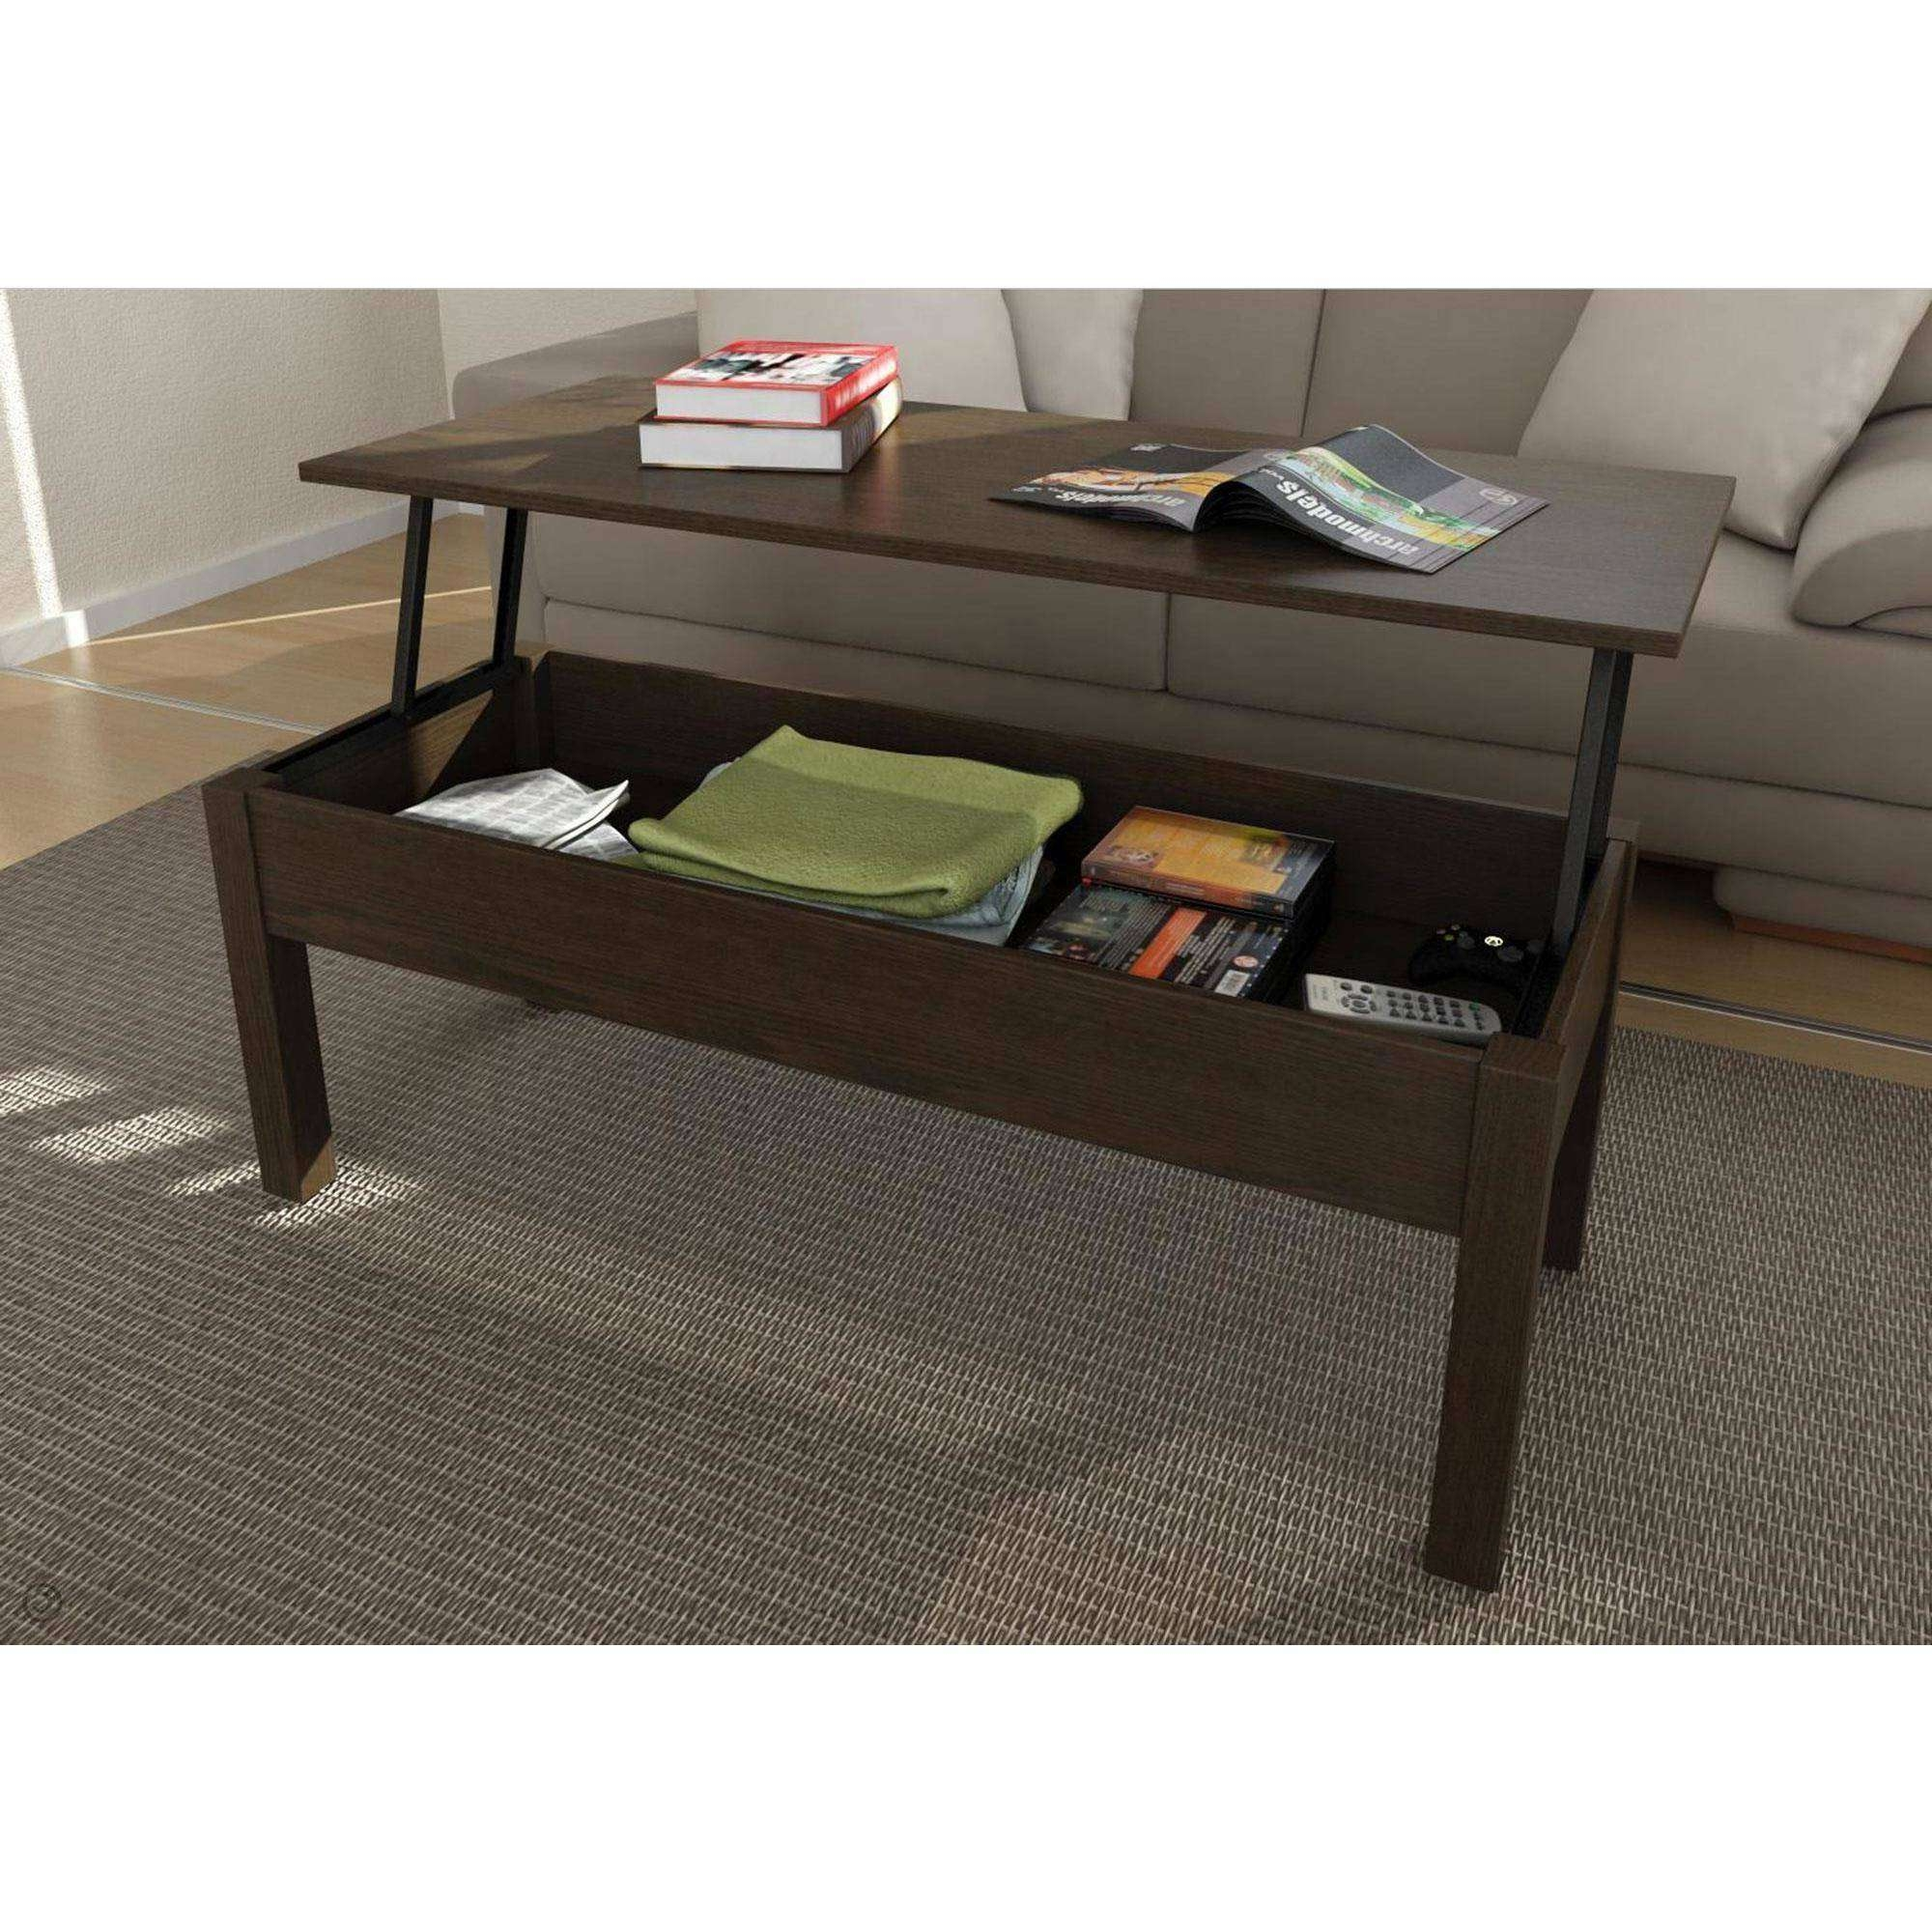 Coffee Table : Magnificent Coffee Table With Storage Retro Coffee Regarding Most Recently Released Cheap Lift Top Coffee Tables (View 6 of 20)